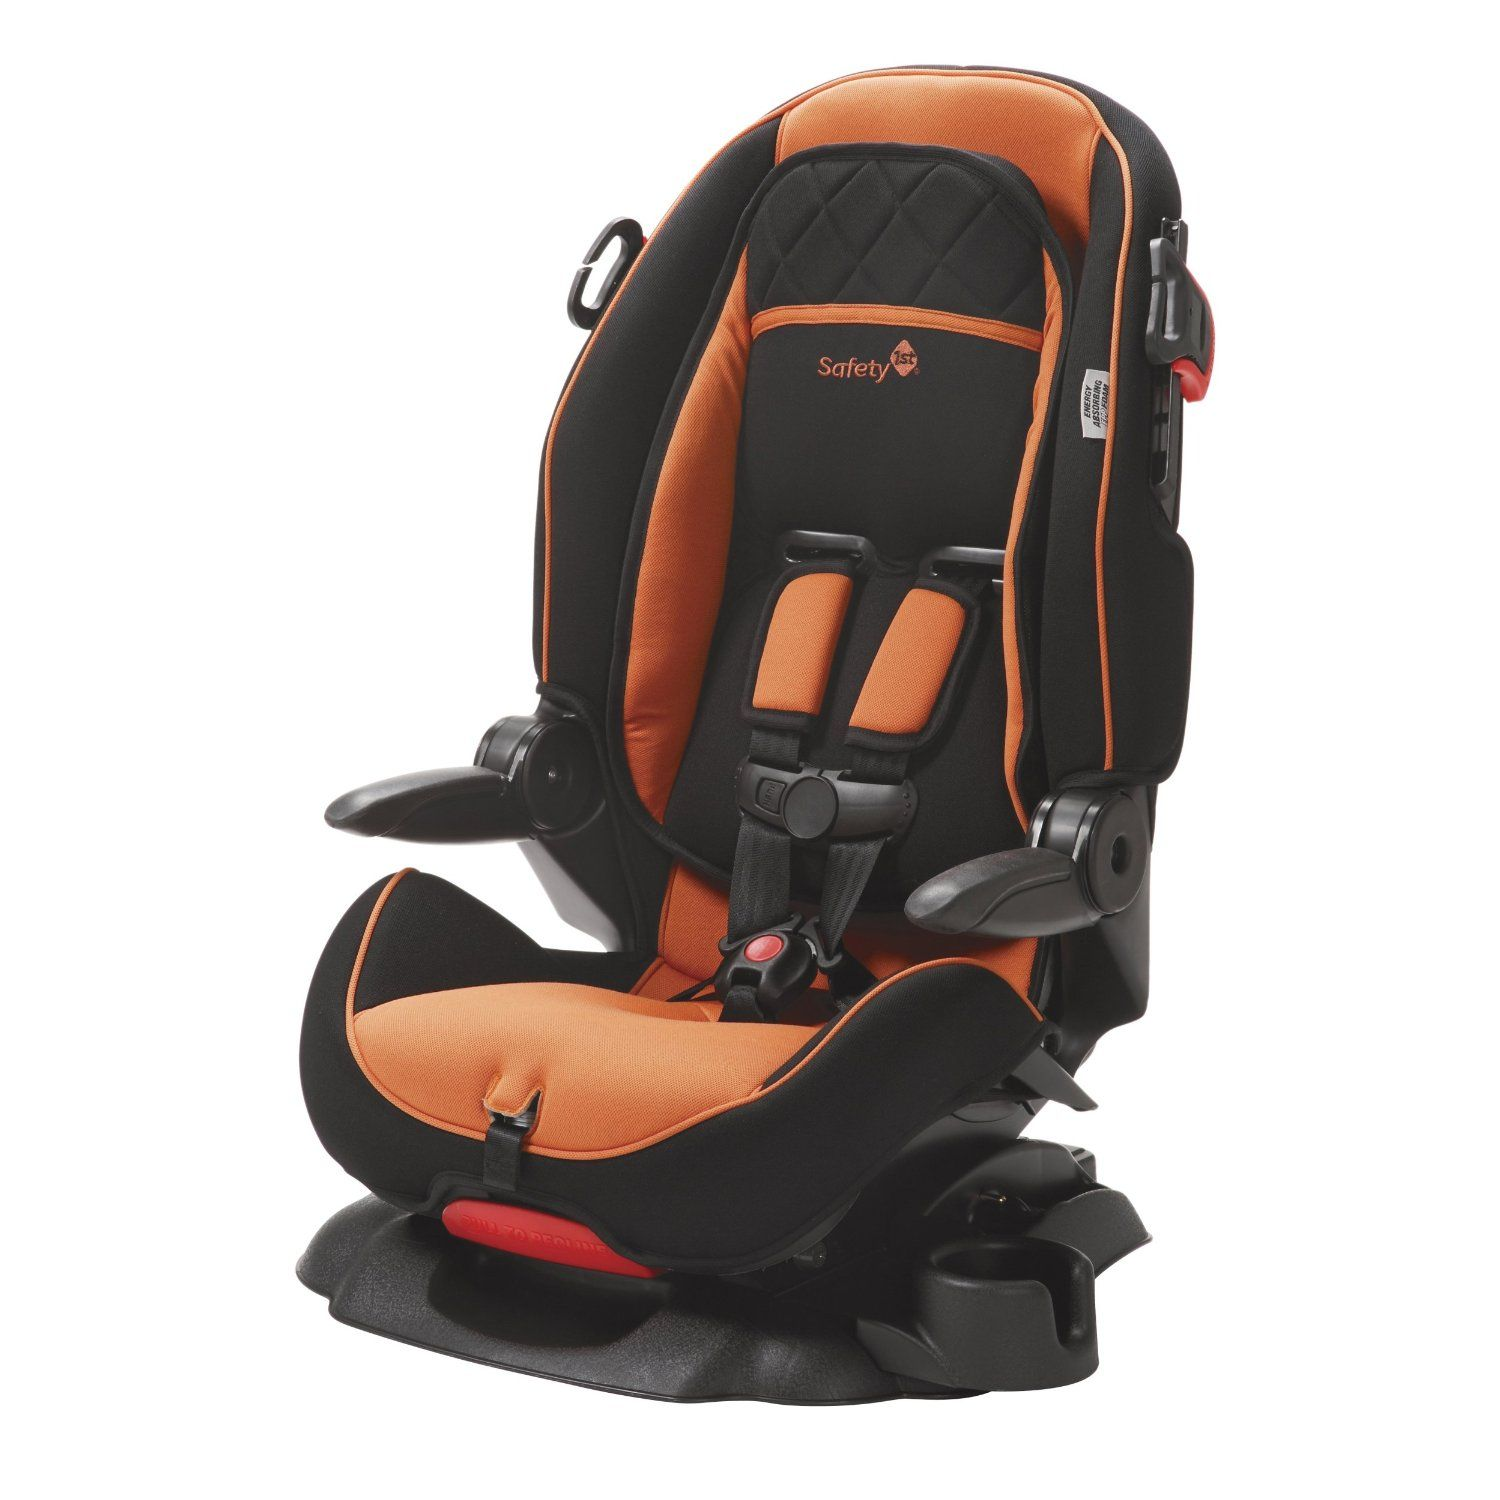 Child Safety Booster Car Seats, Safety 1st Summit Deluxe High Back